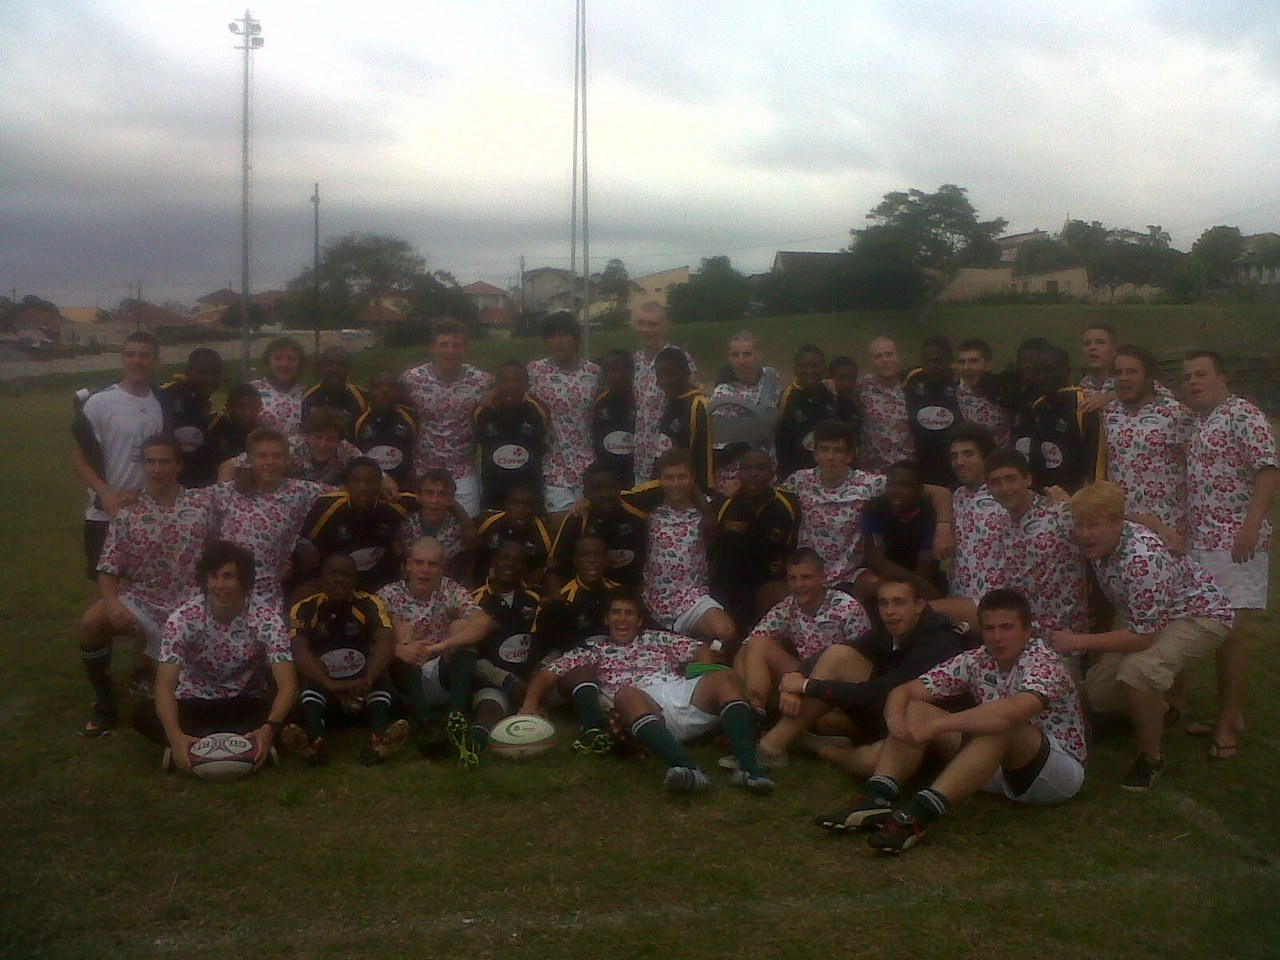 Portuguse_Touring_Team_after_match_vs_Durban_Dev_Pic_2_-_3_July_2013_1280x960.jpg